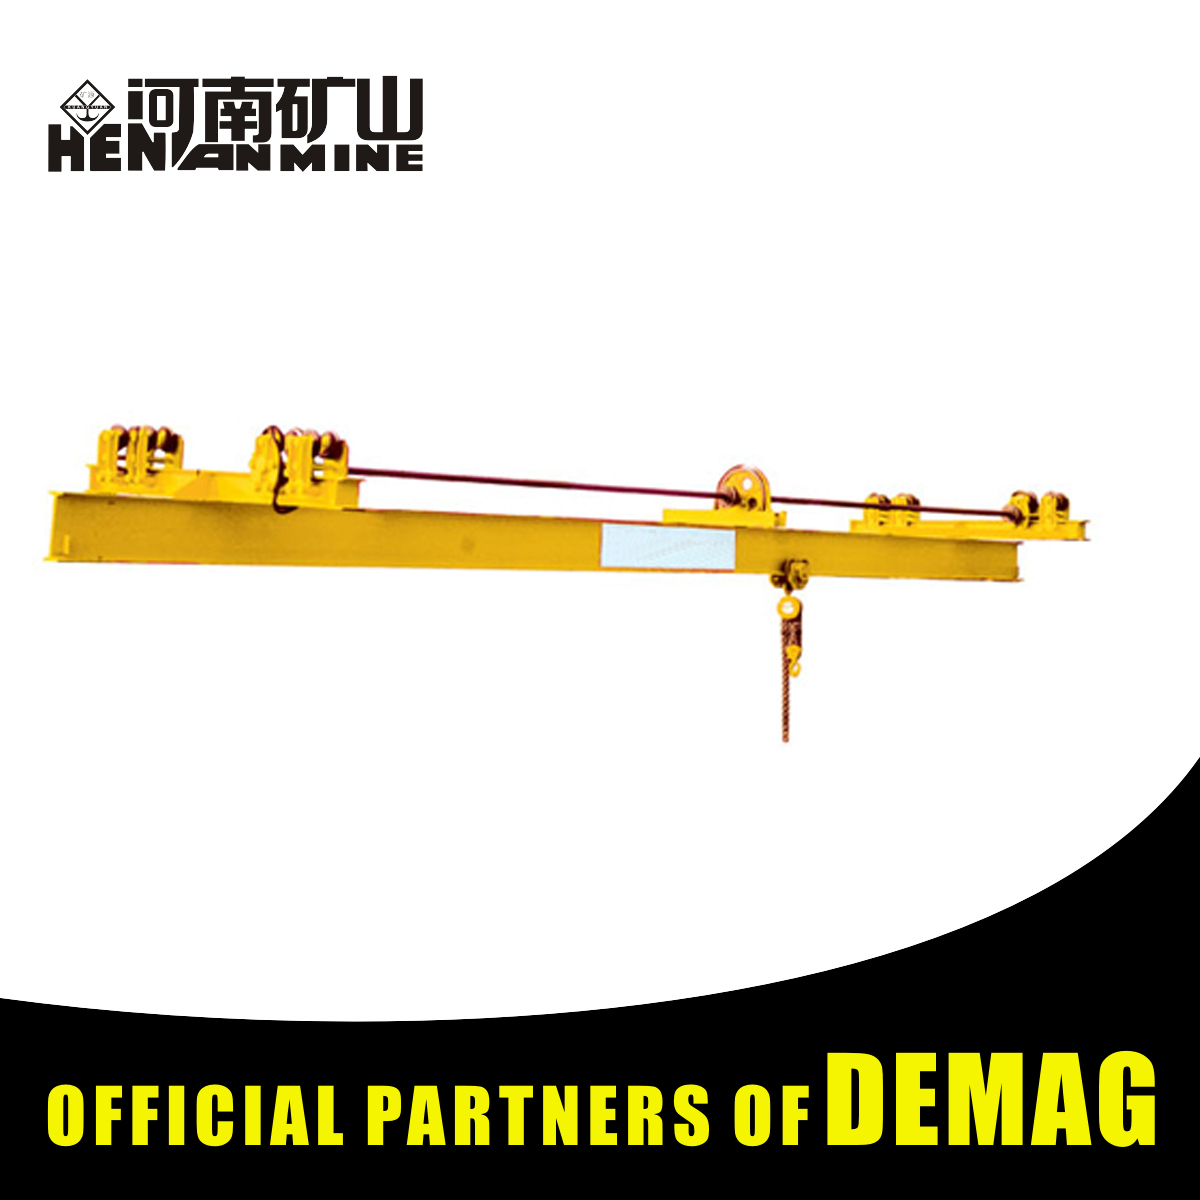 High Speed Overhead Crane Training Simulator For Overhead Crane